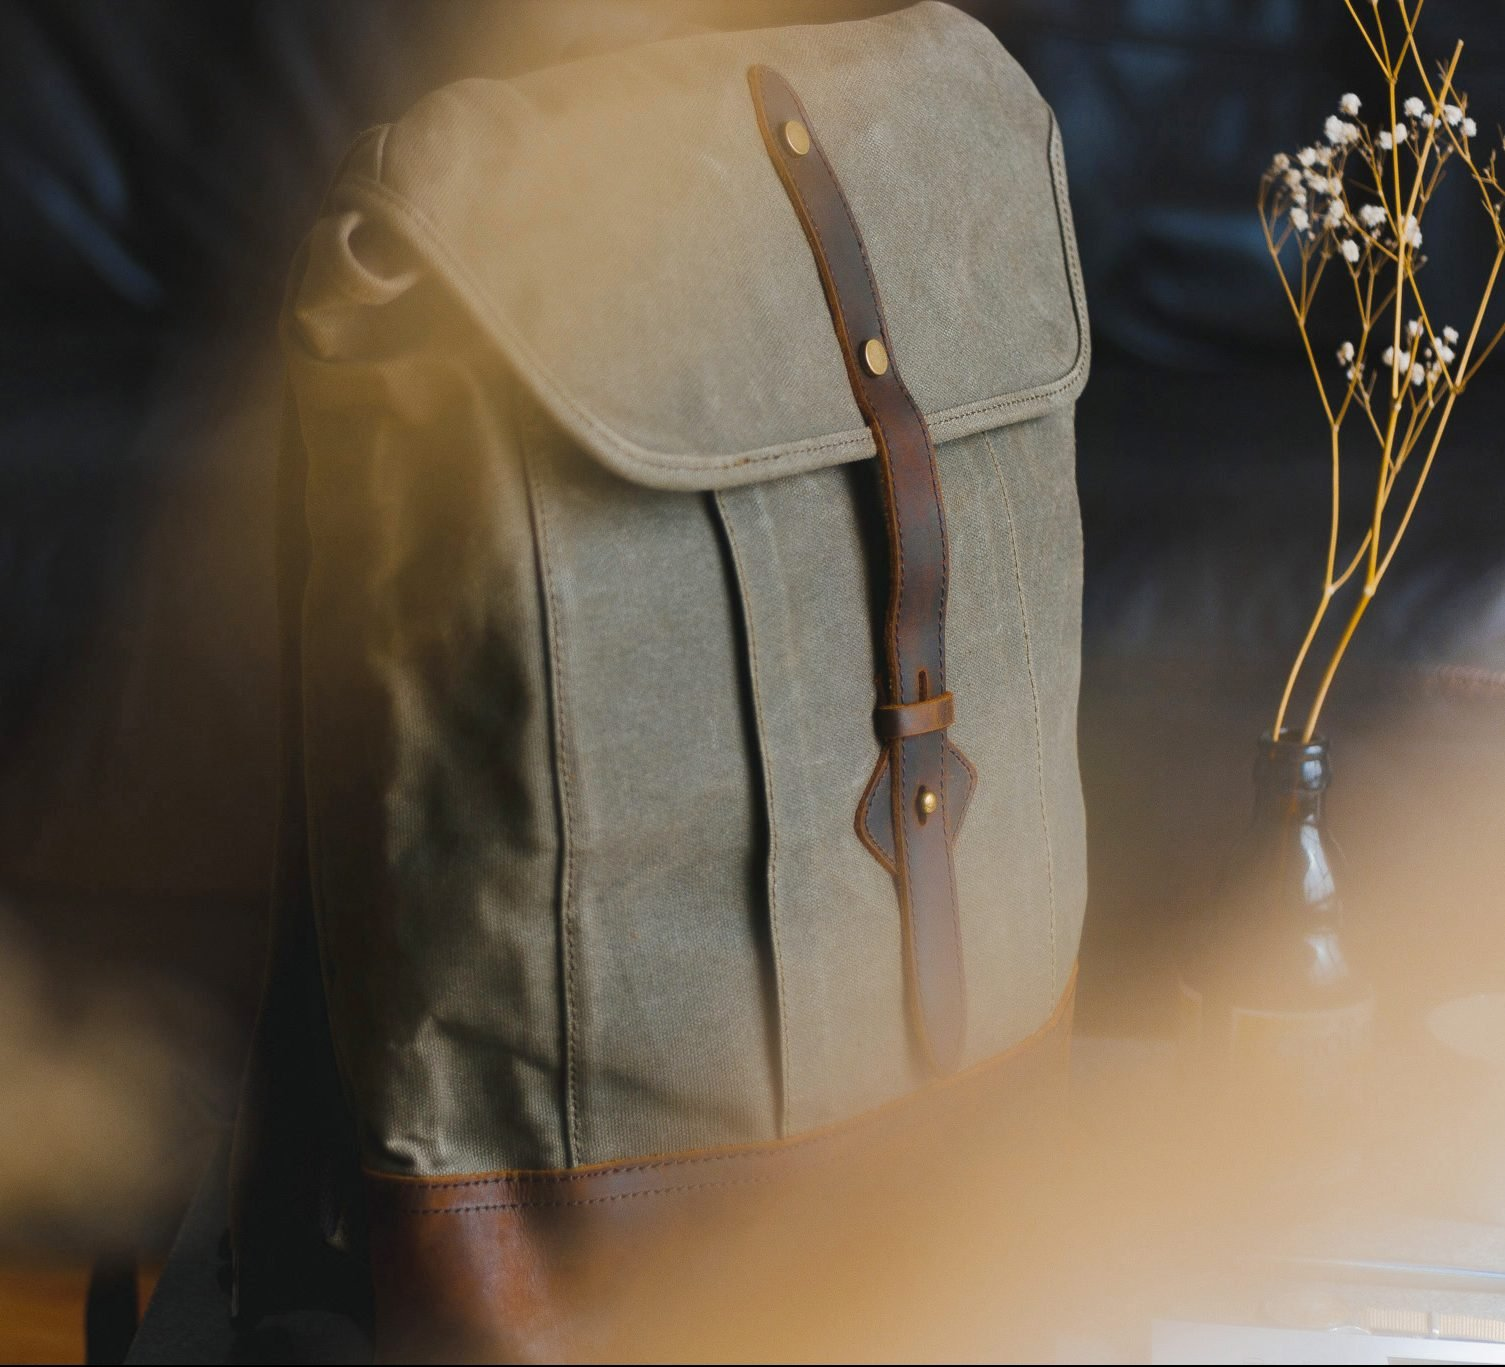 Waxed Cotton Canvas and Leather Backpack Rucksack - Menswear Denim Rugged Style Flatlay - The Kingston in Moss by Oldfield